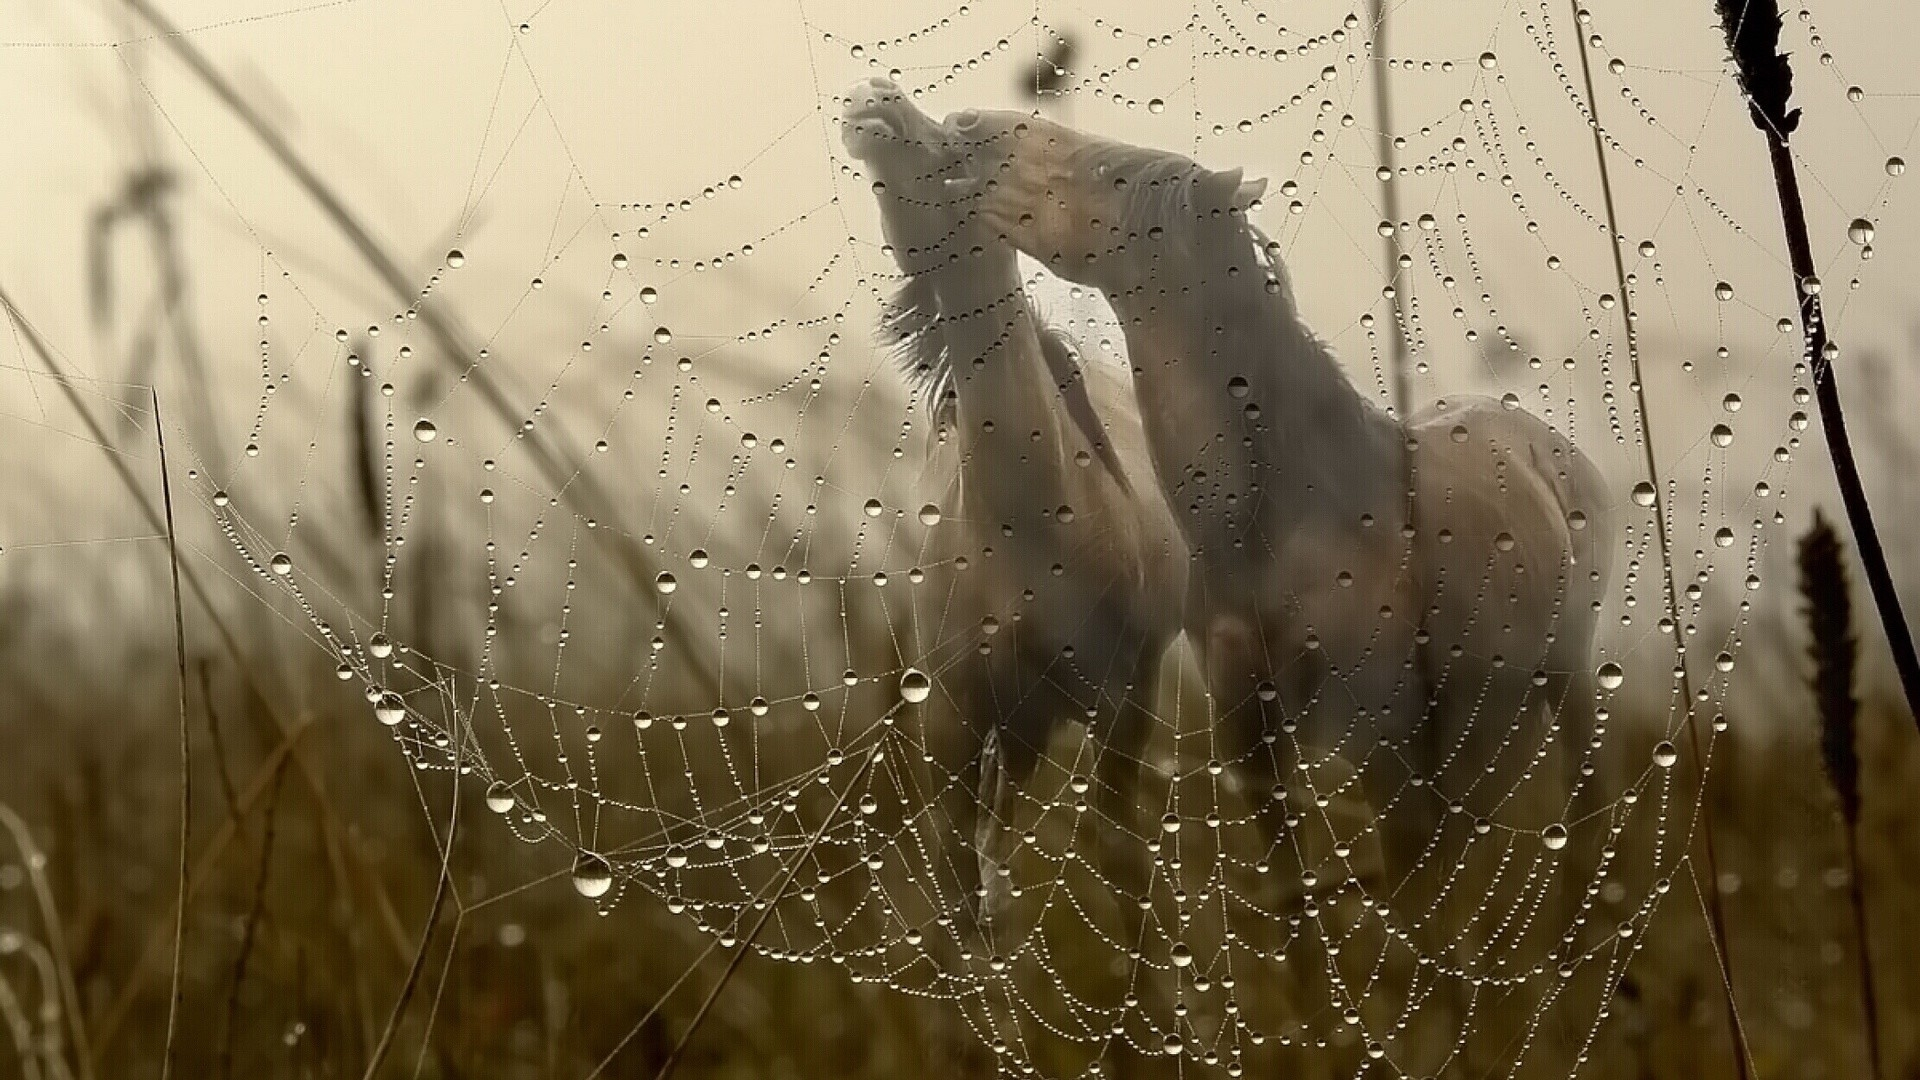 Spider web in the grass Wallpaper Wallpaper Collective 1920x1080